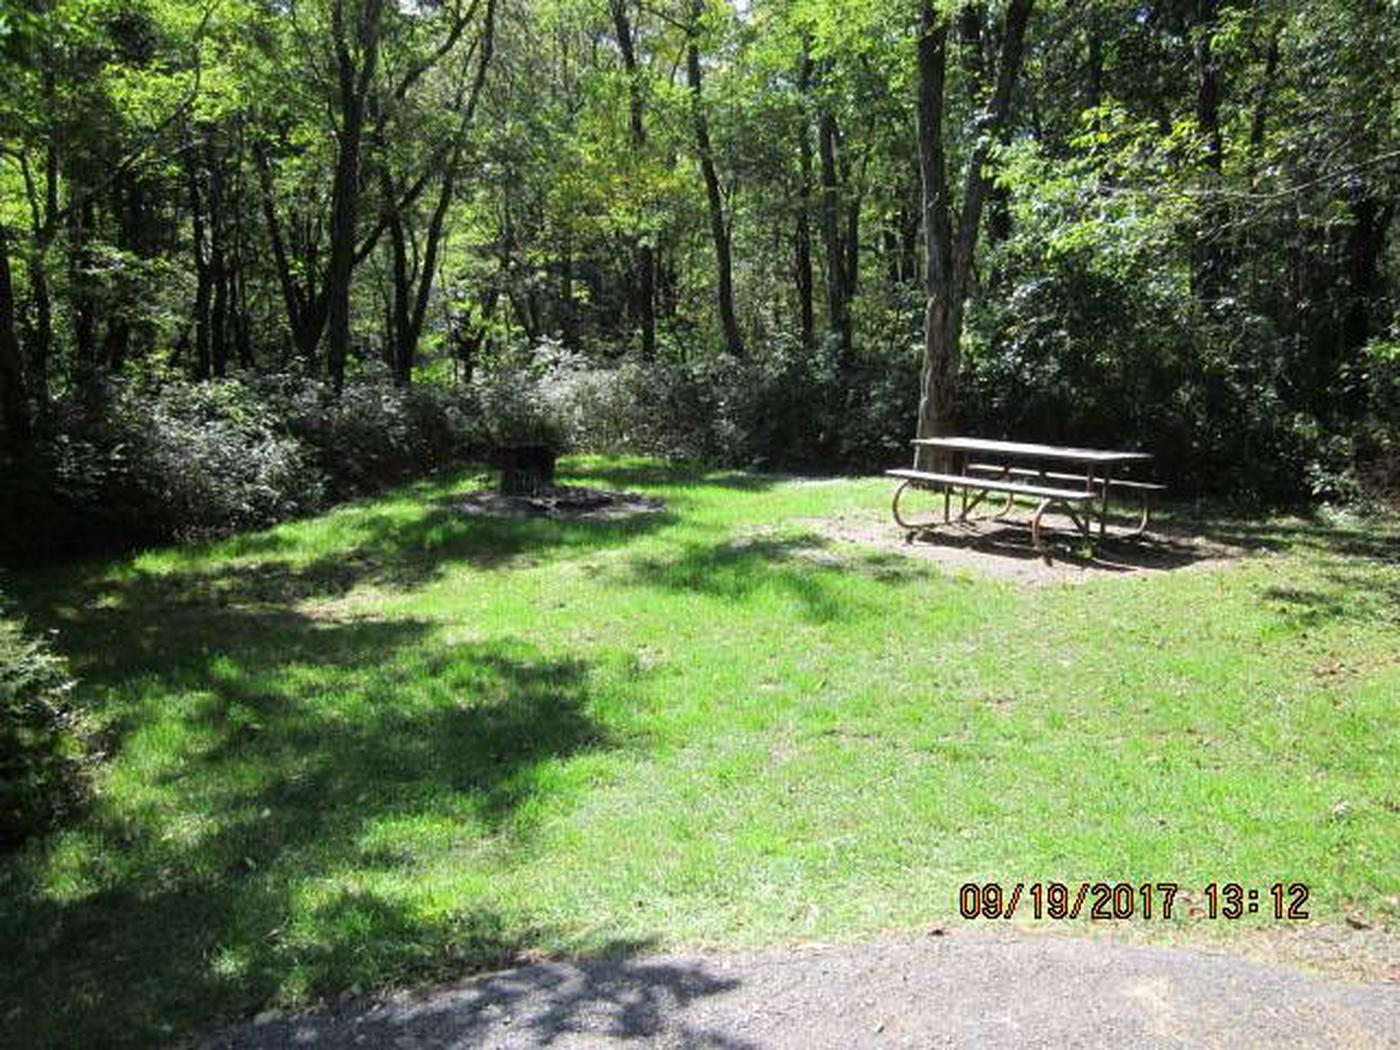 Loft Mountain Campground - Site F172Site F172